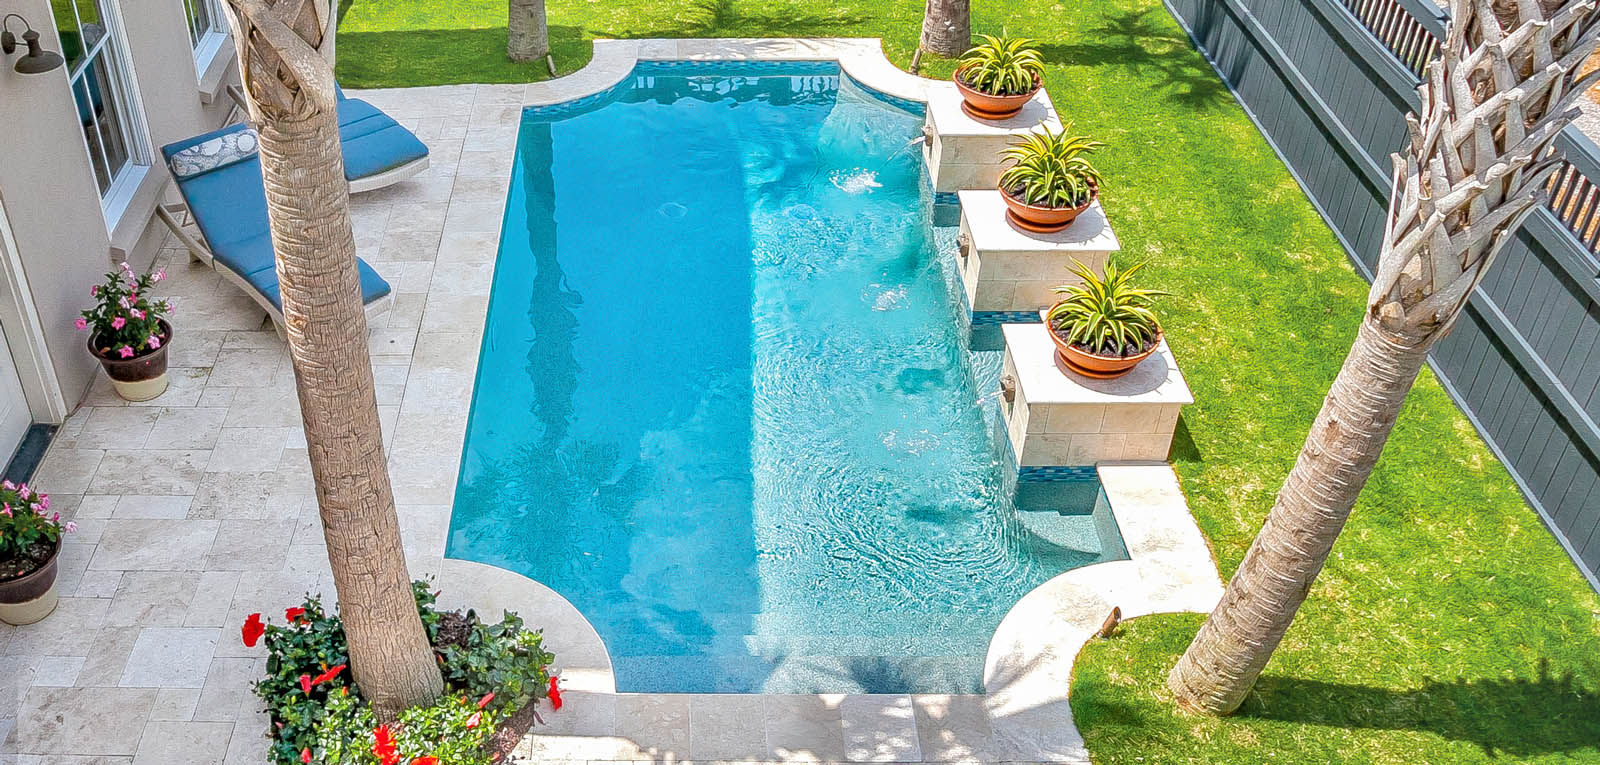 Roman Style Pools Grecian Style Pool Design Pictures